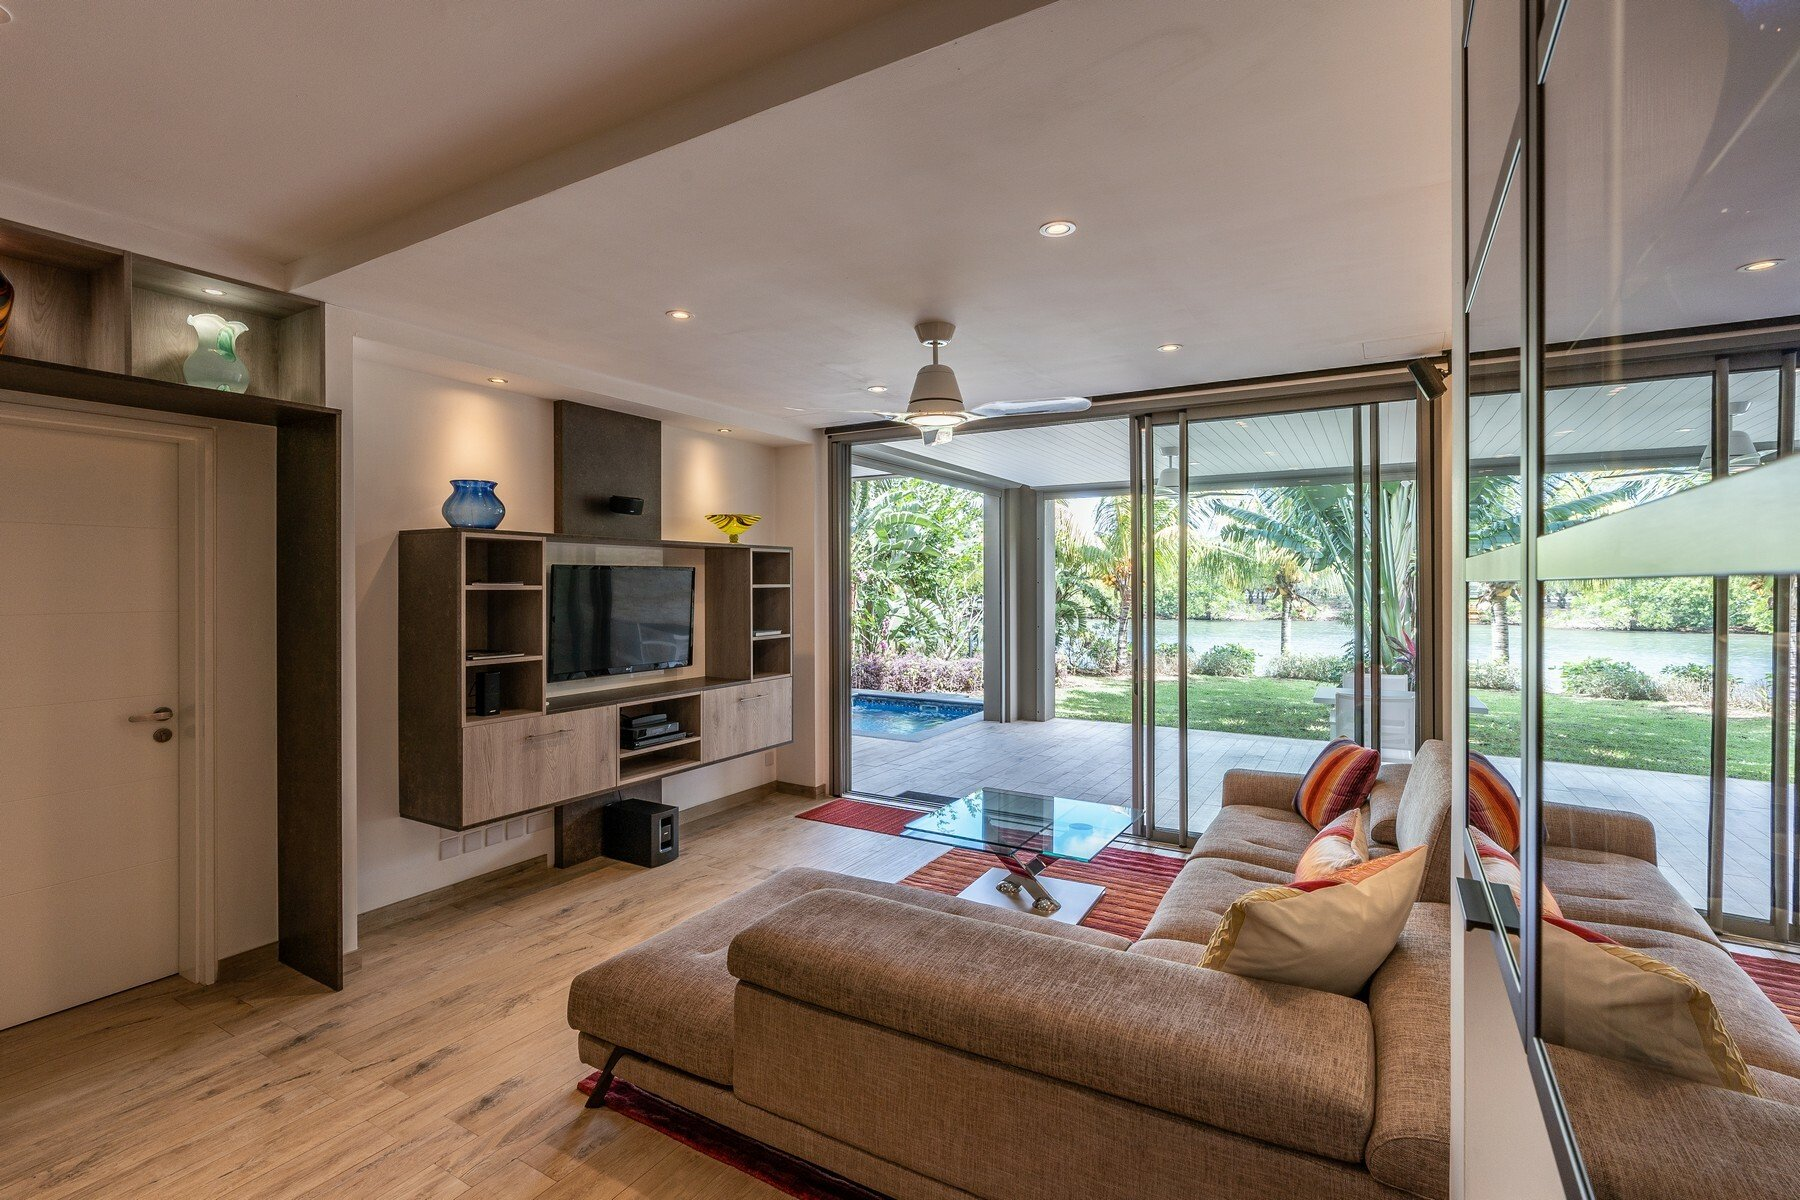 Apartment in Black River, Rivière Noire District, Mauritius 1